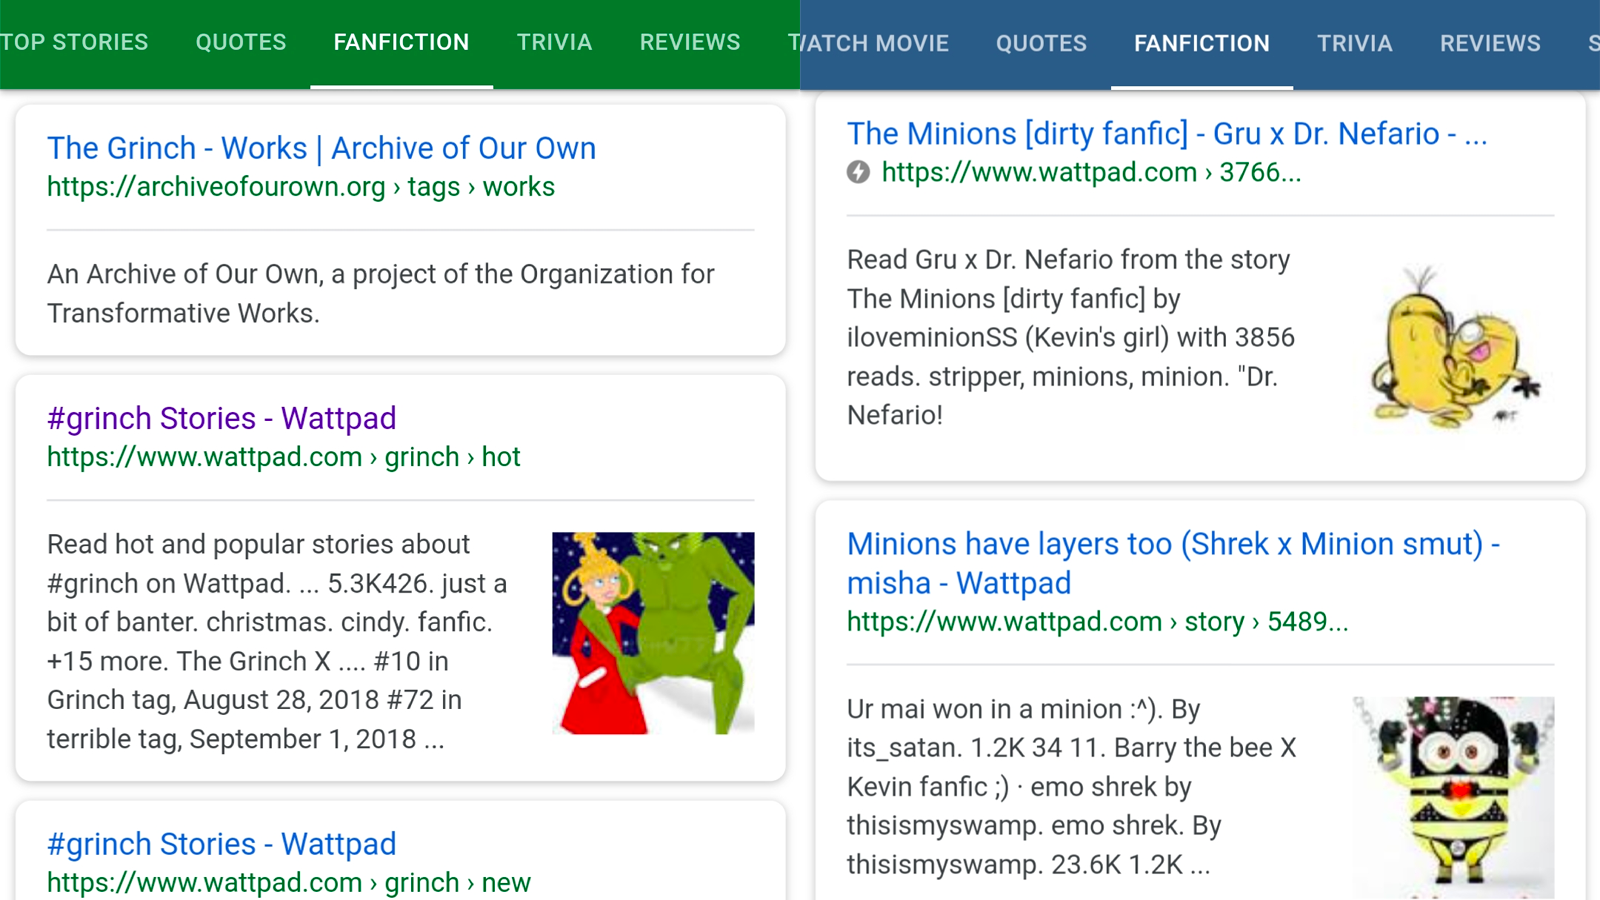 Google Axes Fanfiction Tab That Suggested Grinch And Minions Porn